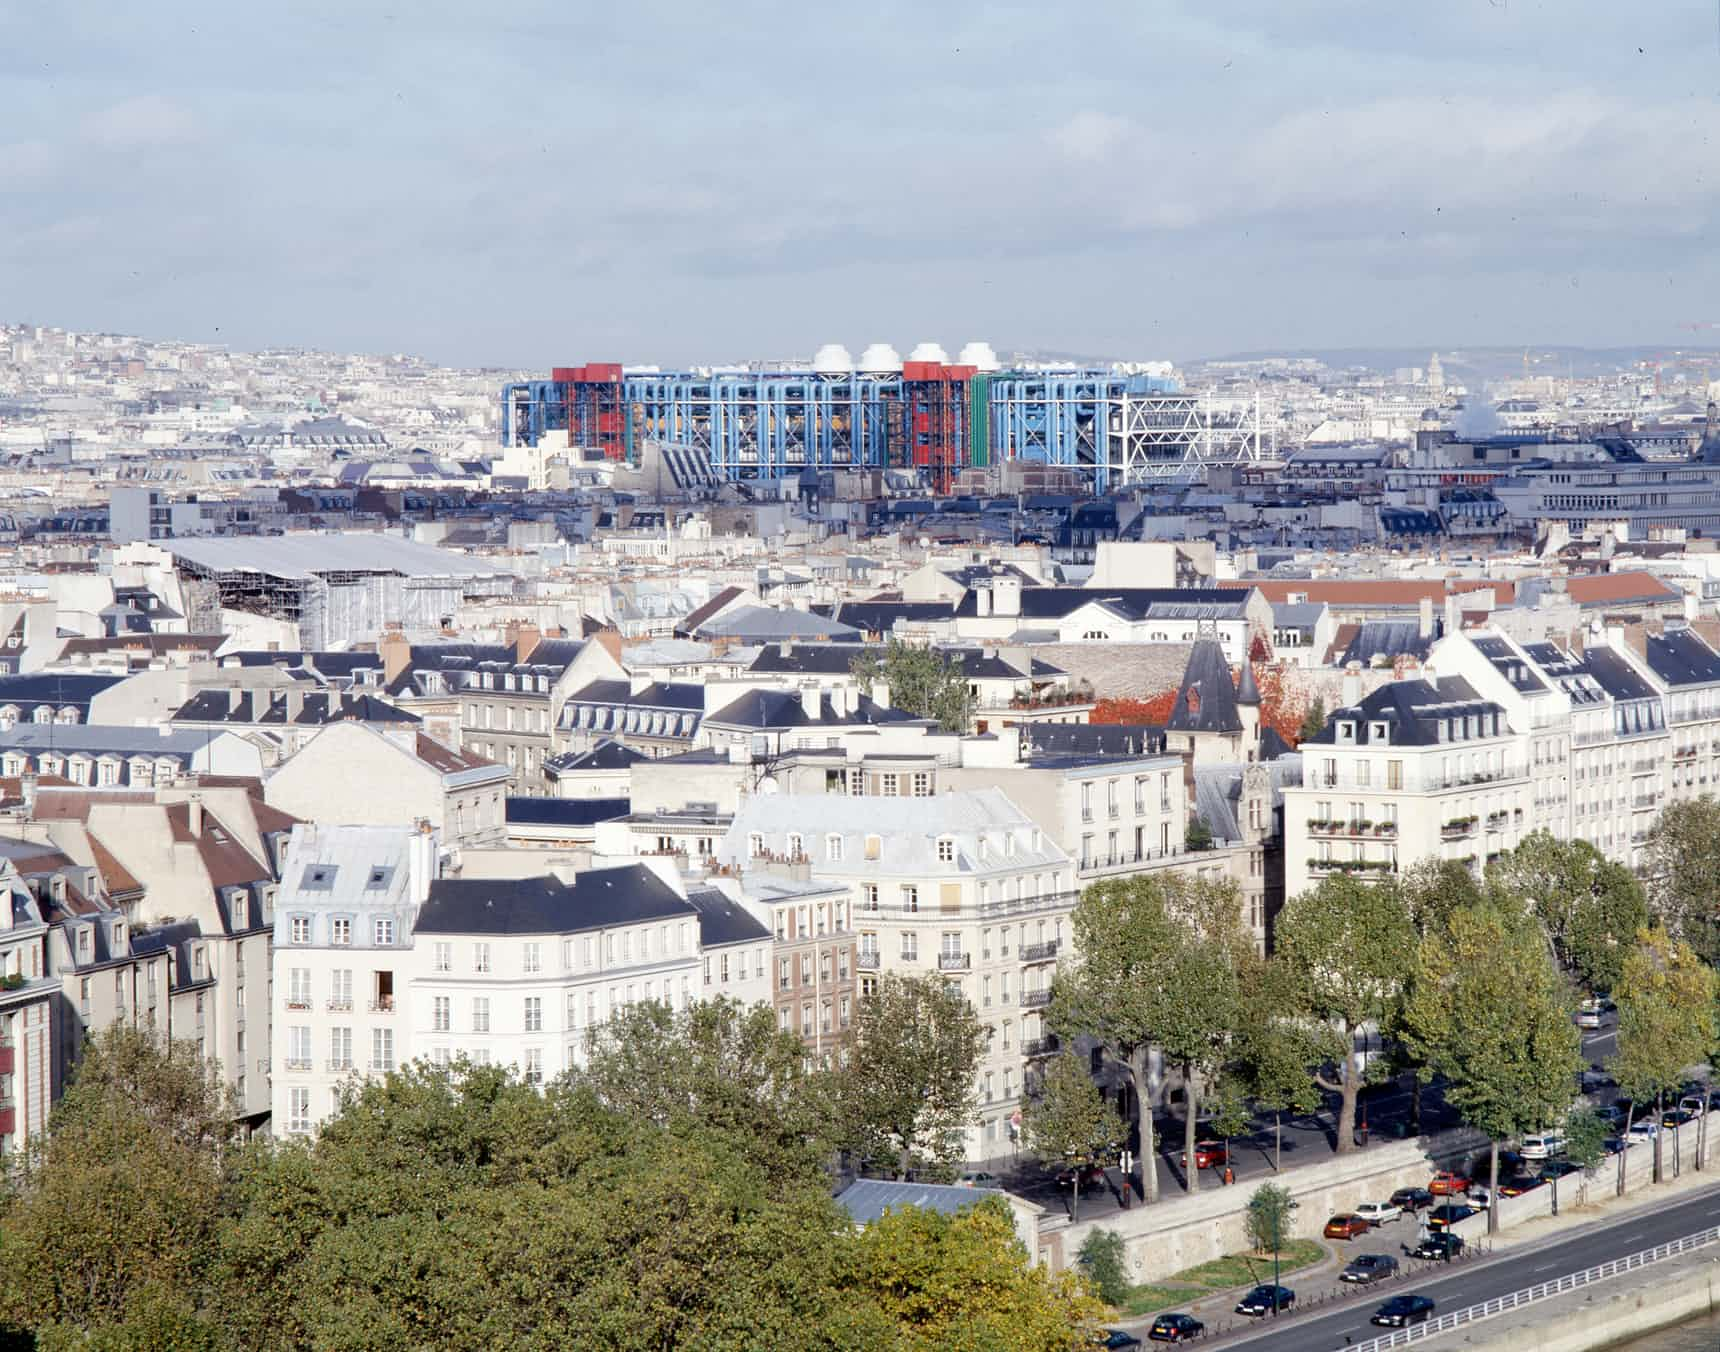 The Pompidou seen from across the city